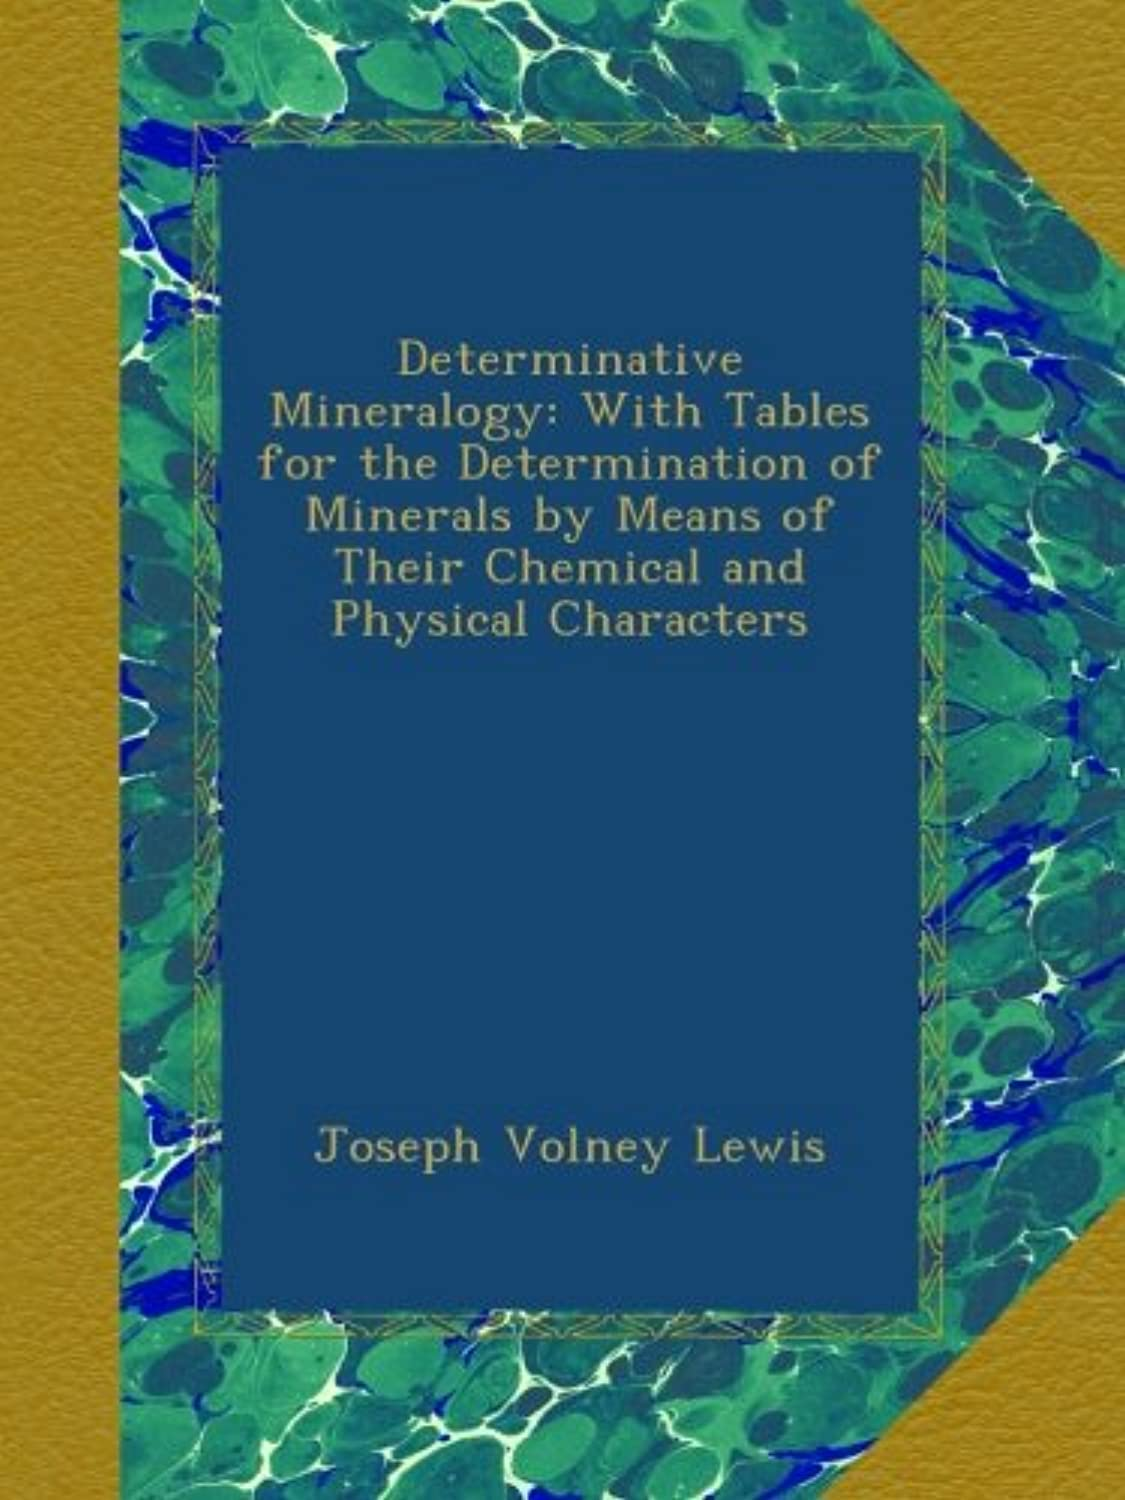 Determinative Mineralogy: With Tables for the Determination of Minerals by Means of Their Chemical and Physical Characters